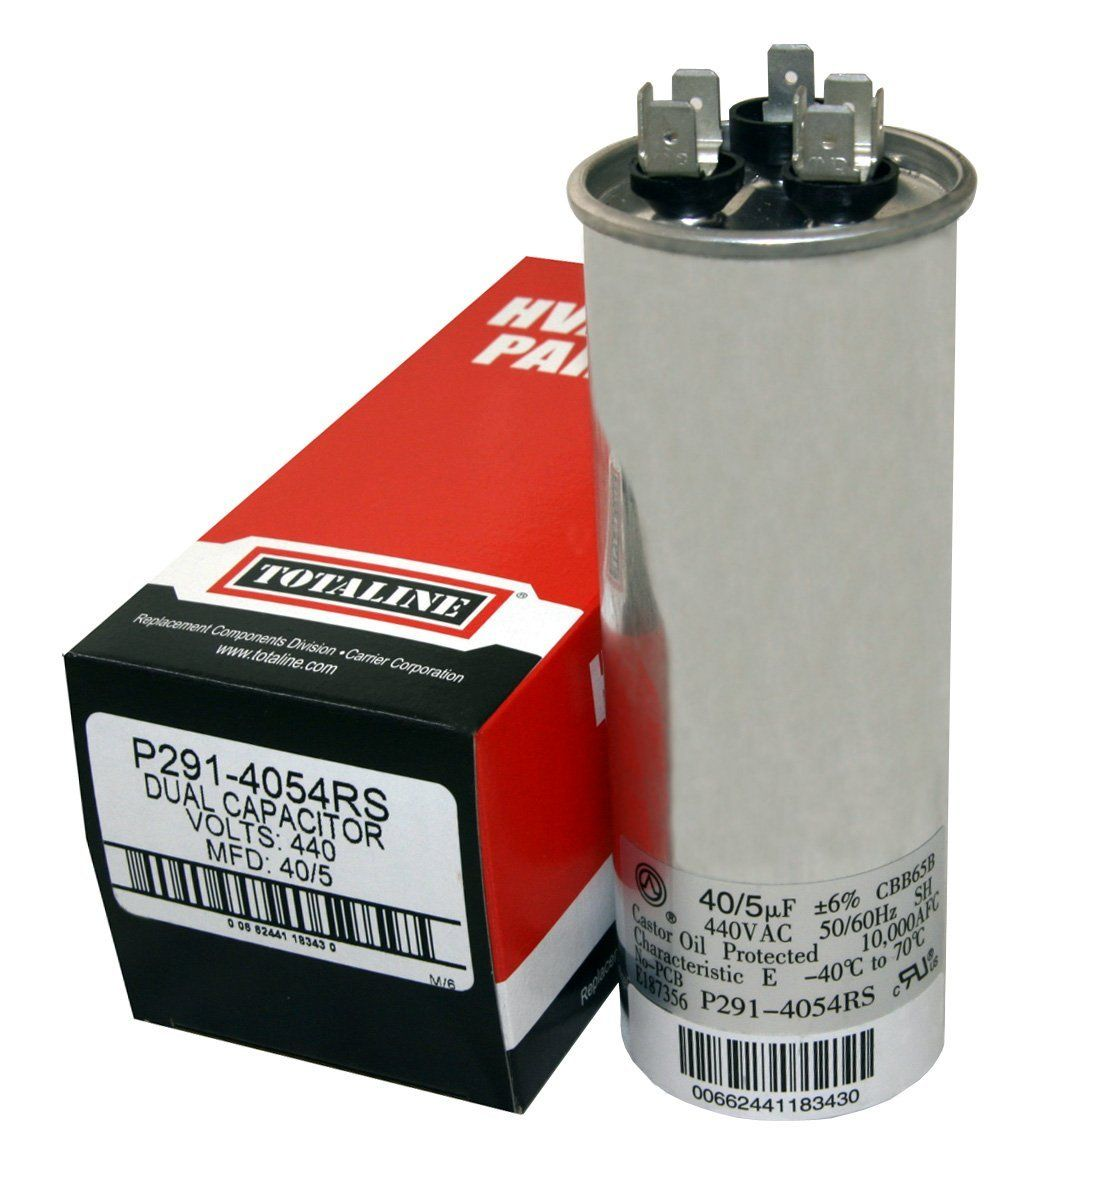 P2914054RS 40/5mf, 370 or 440 Dual Run Round Capacitor